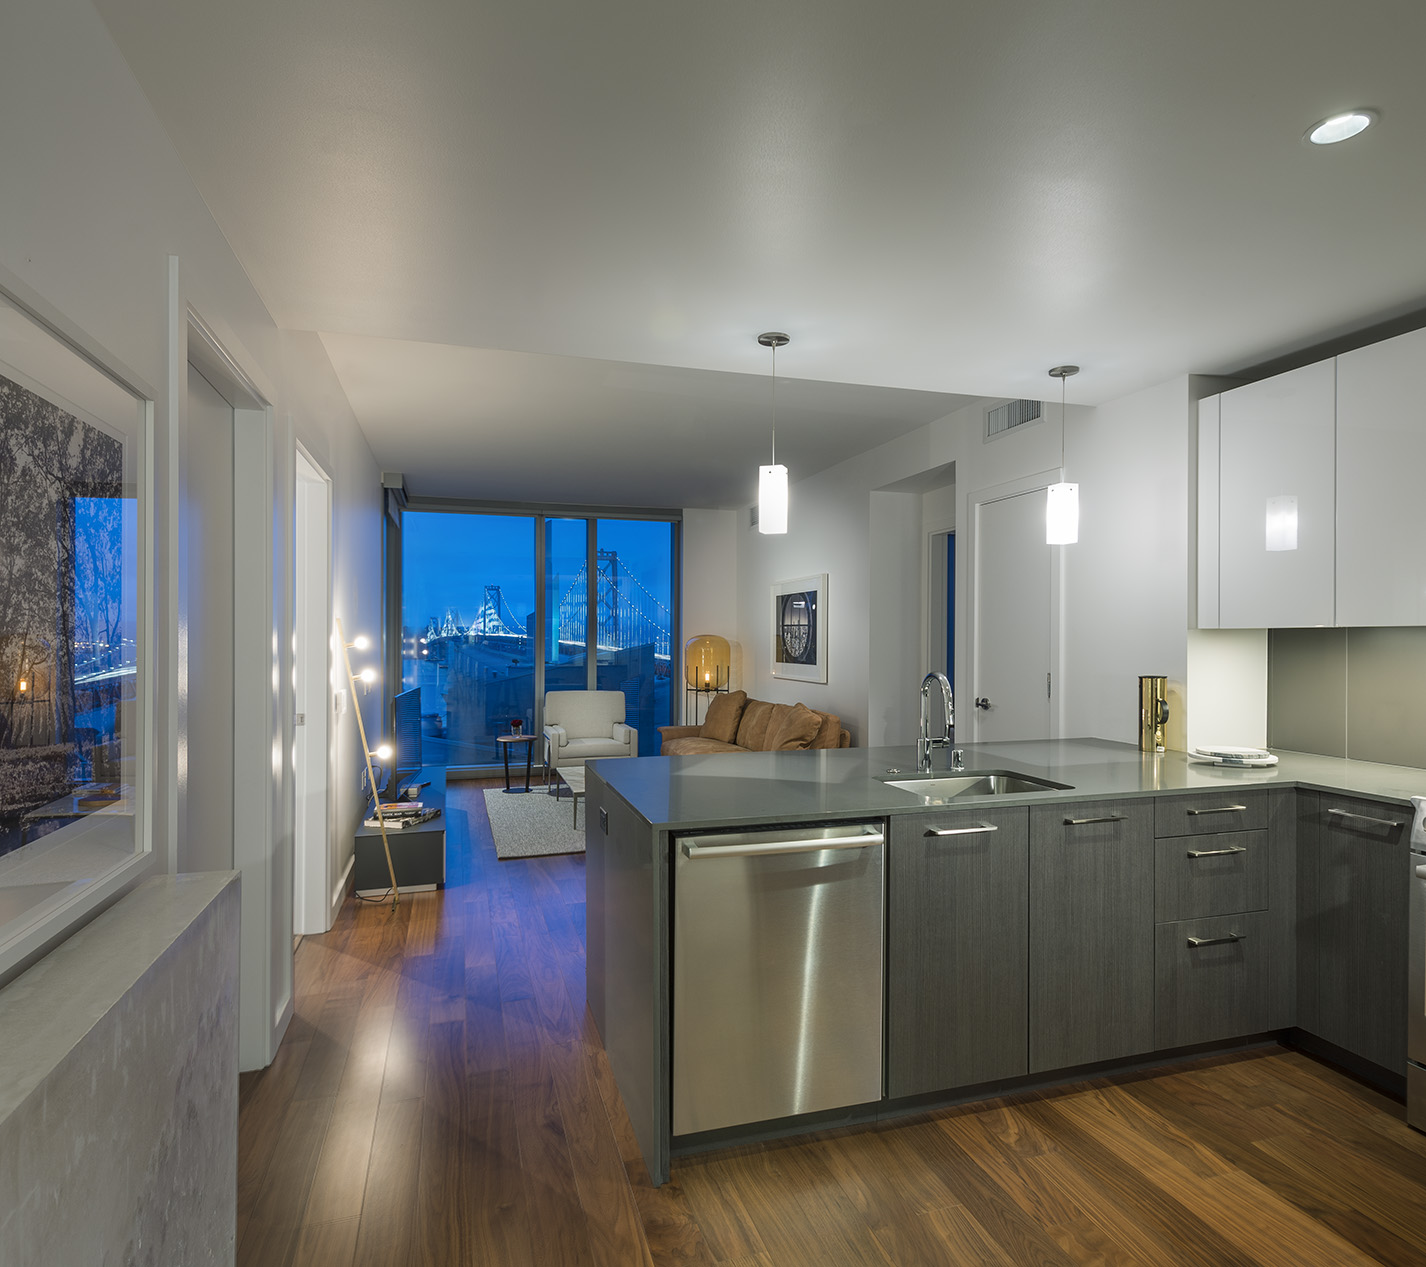 Apartments In San Francisco Bay Area: Photos And Tours Of 399 Fremont